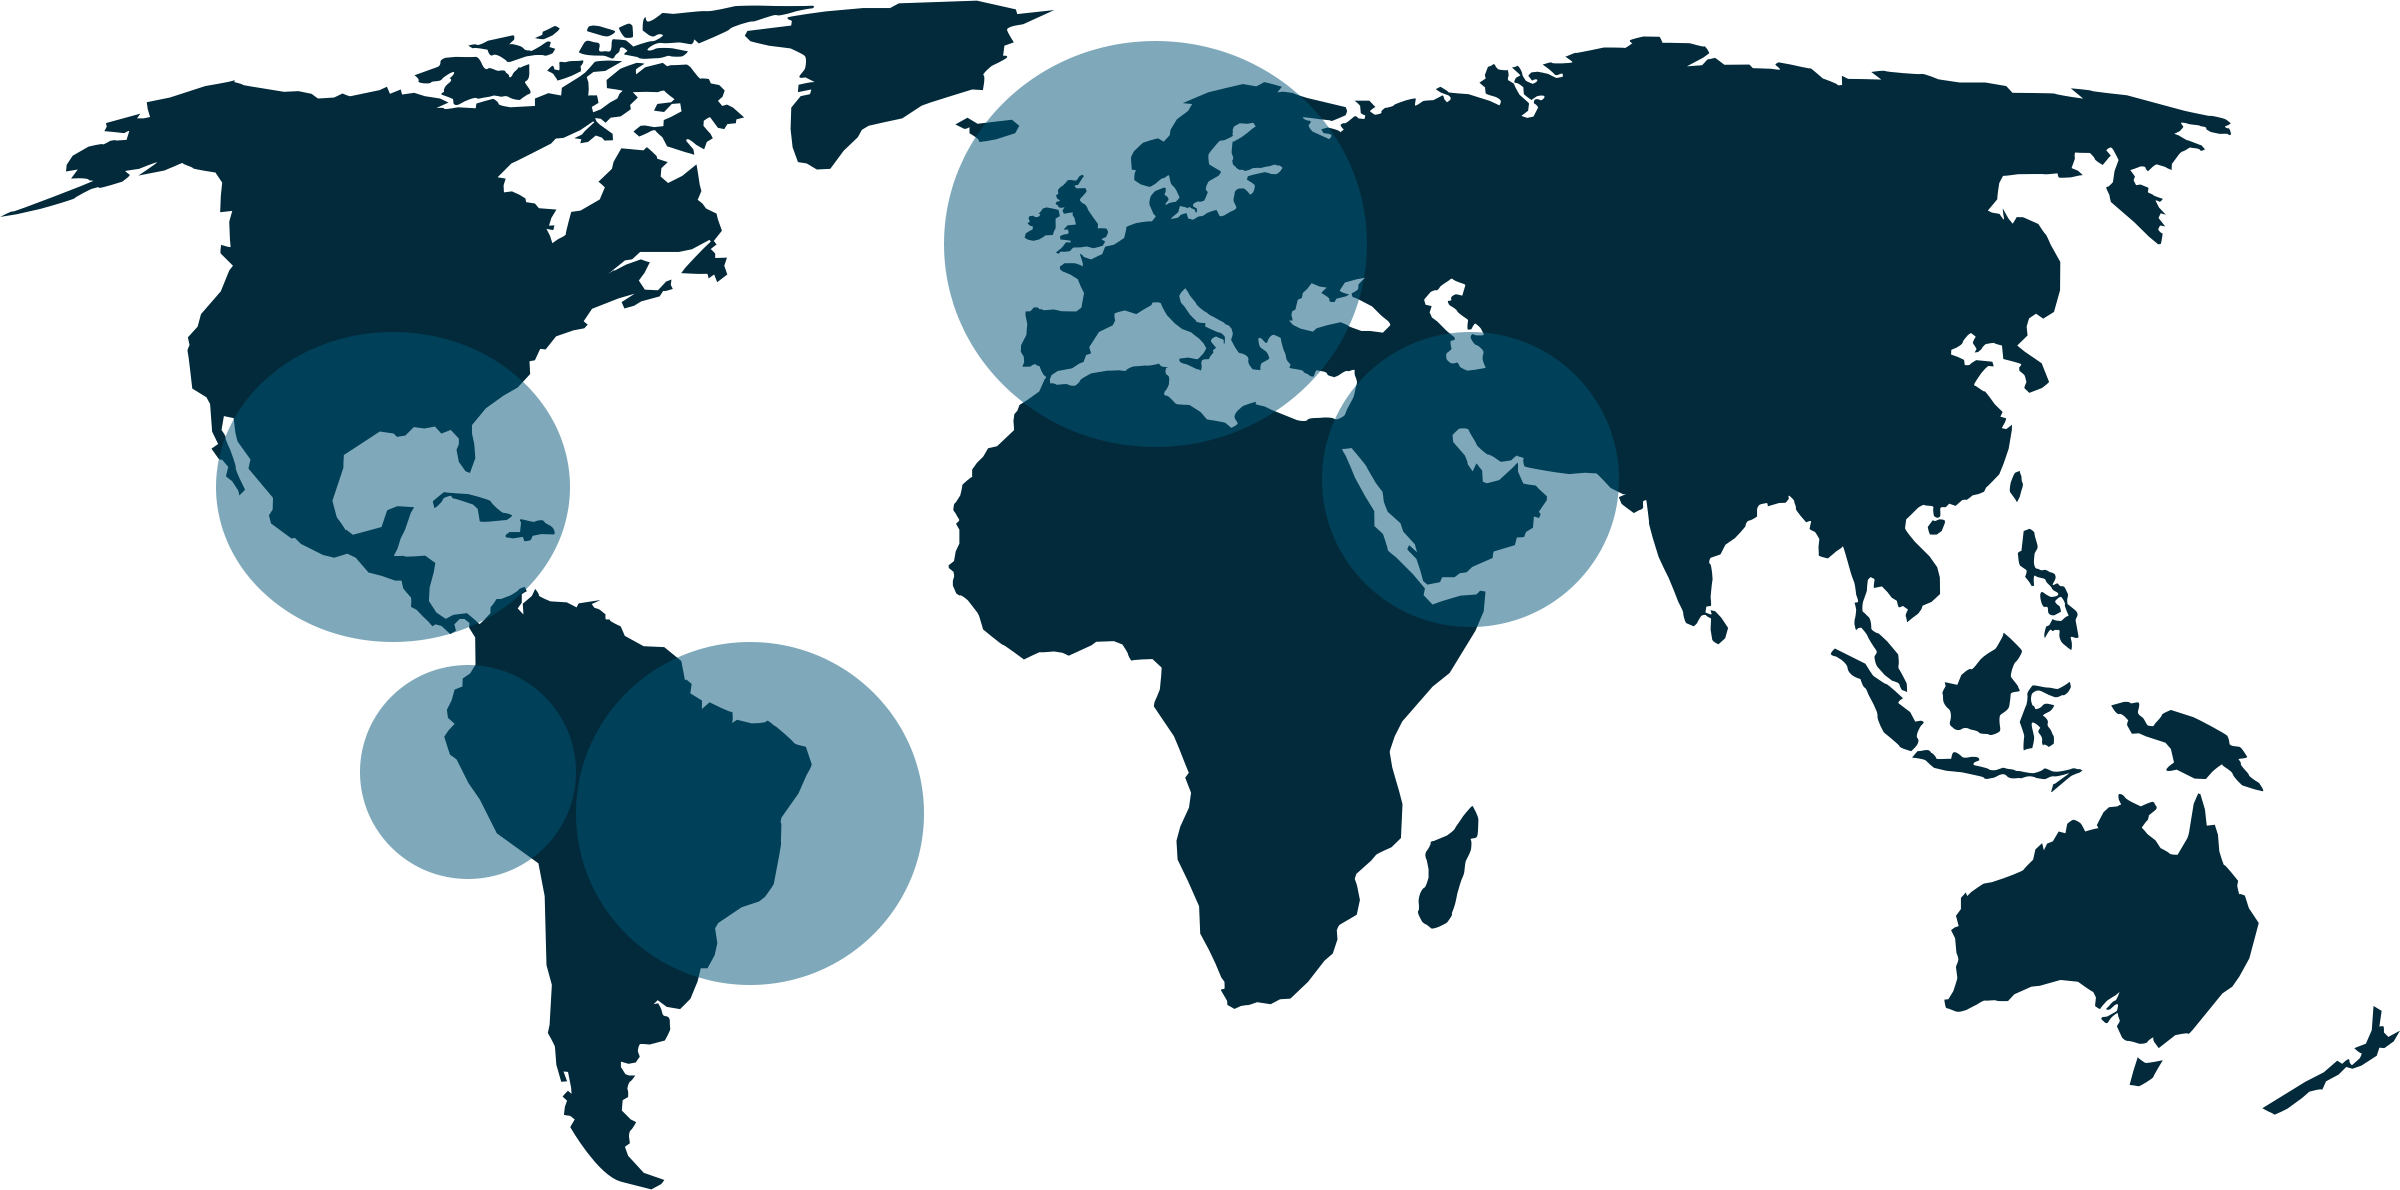 The Global Community for Leaders international reach